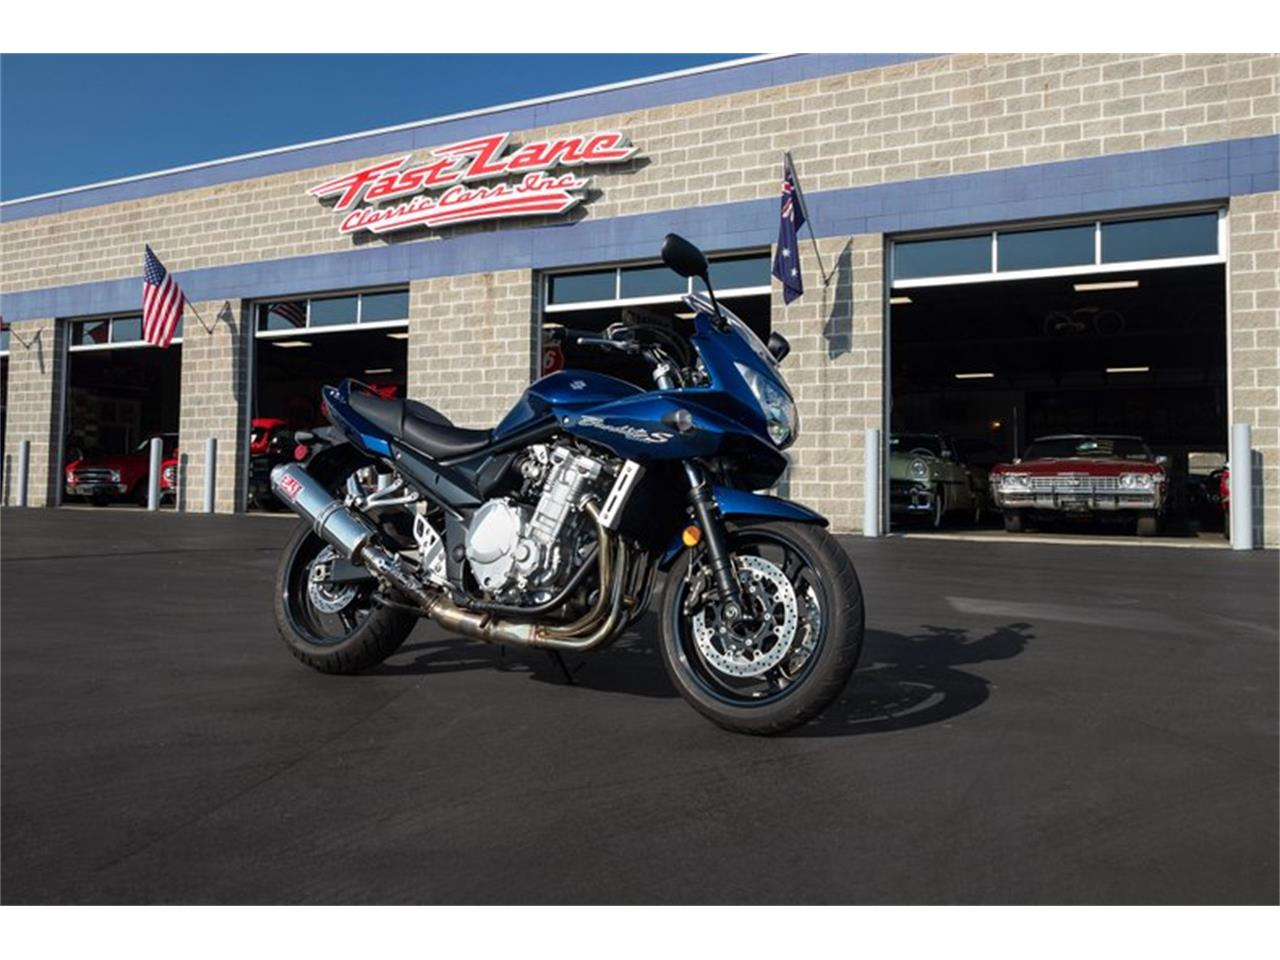 2009 Suzuki Bandit (CC-1268604) for sale in St. Charles, Missouri